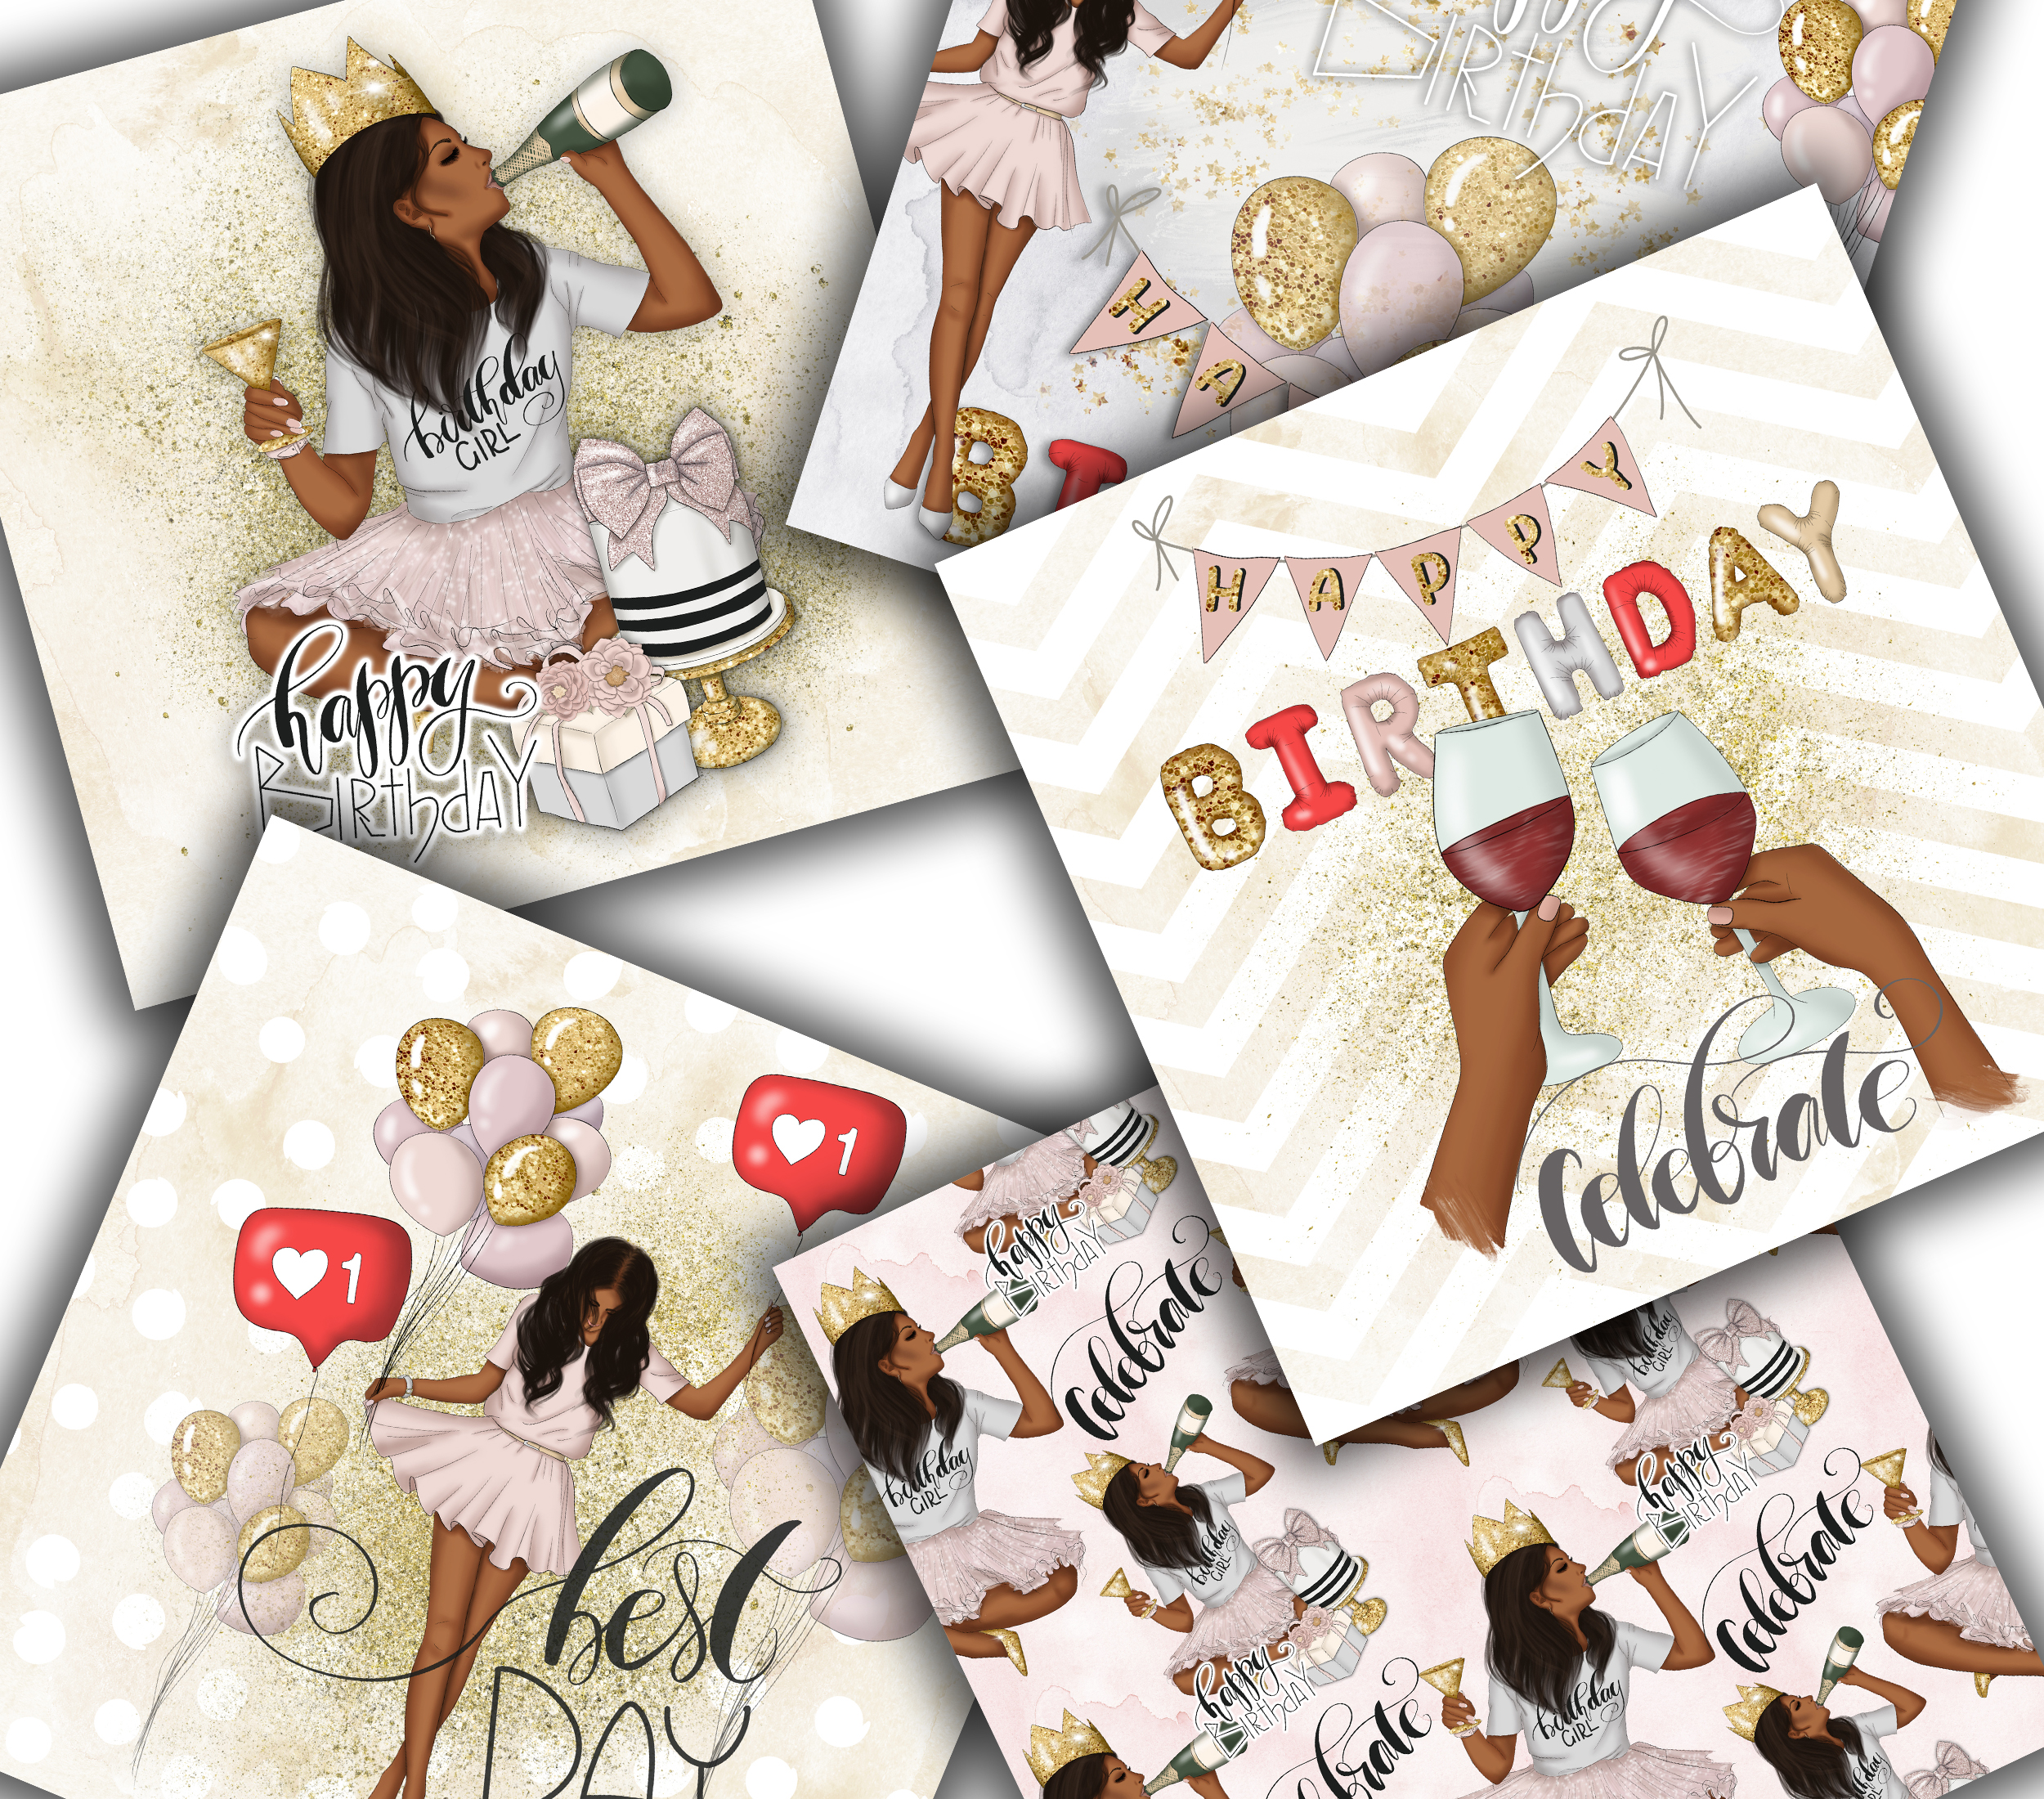 Best Day Ever Clipart Graphic Design example image 12